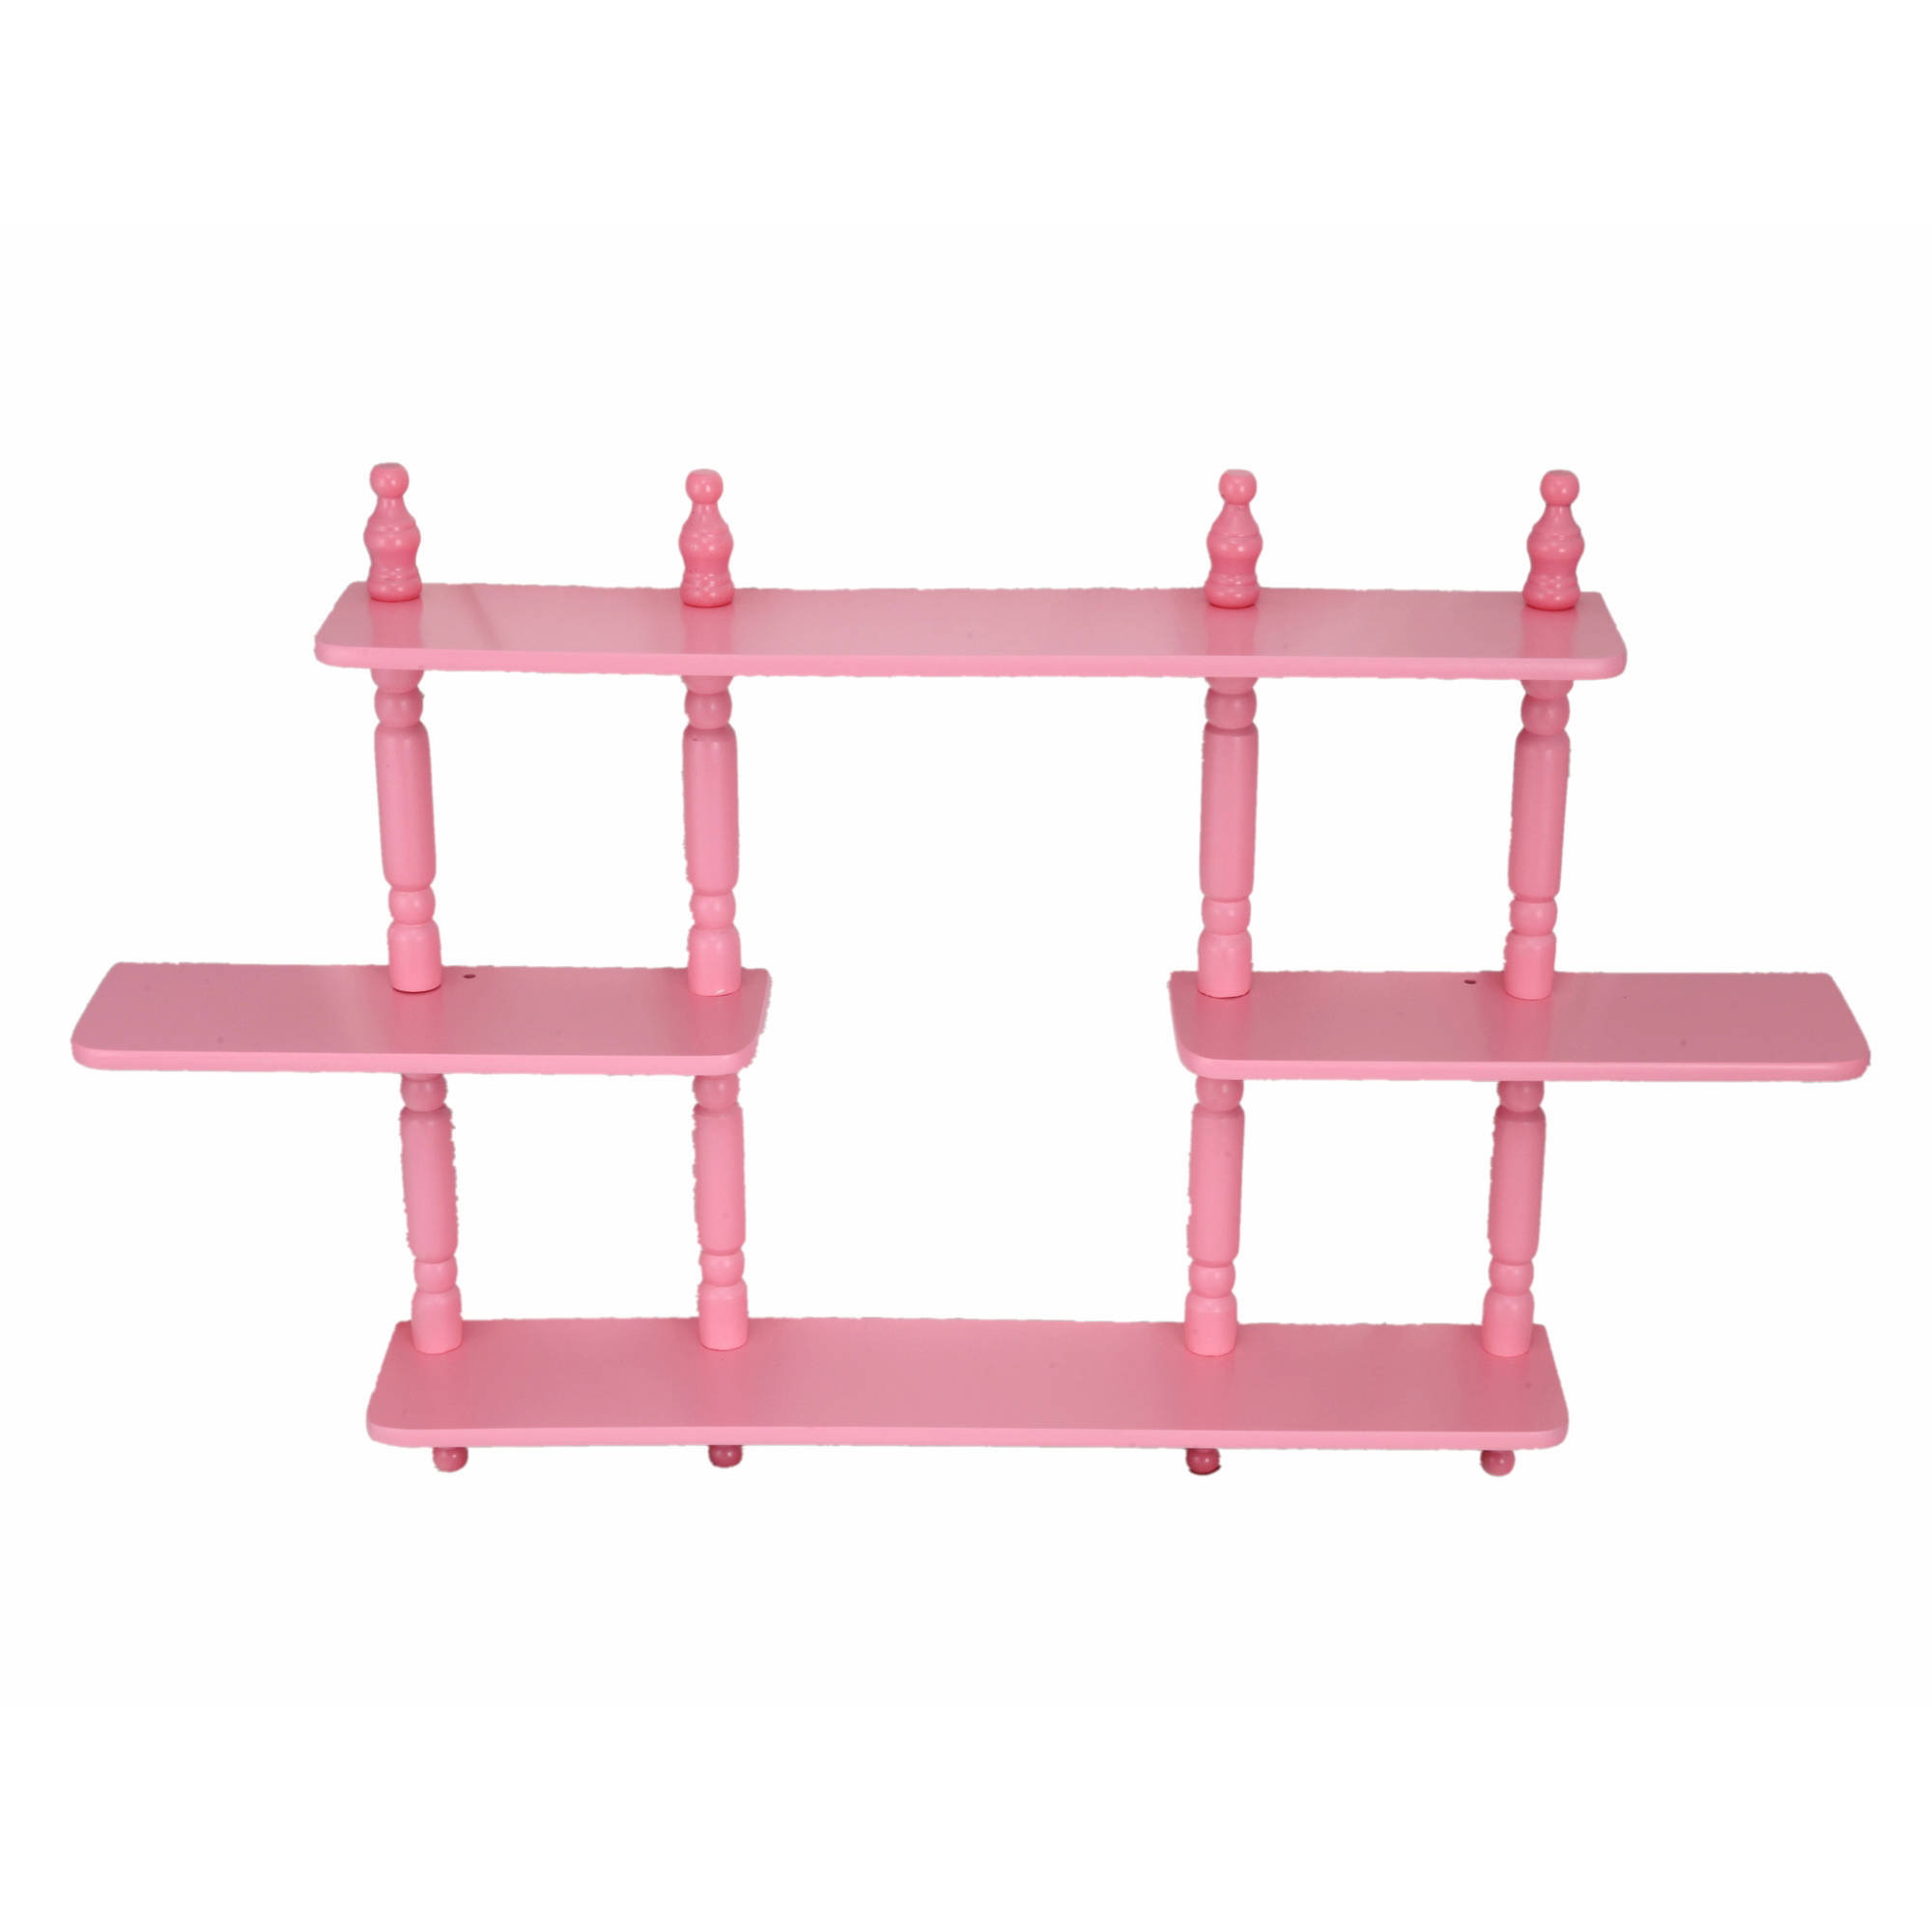 Home Craft 3-Tier Wall Shelves, Multiple Colors